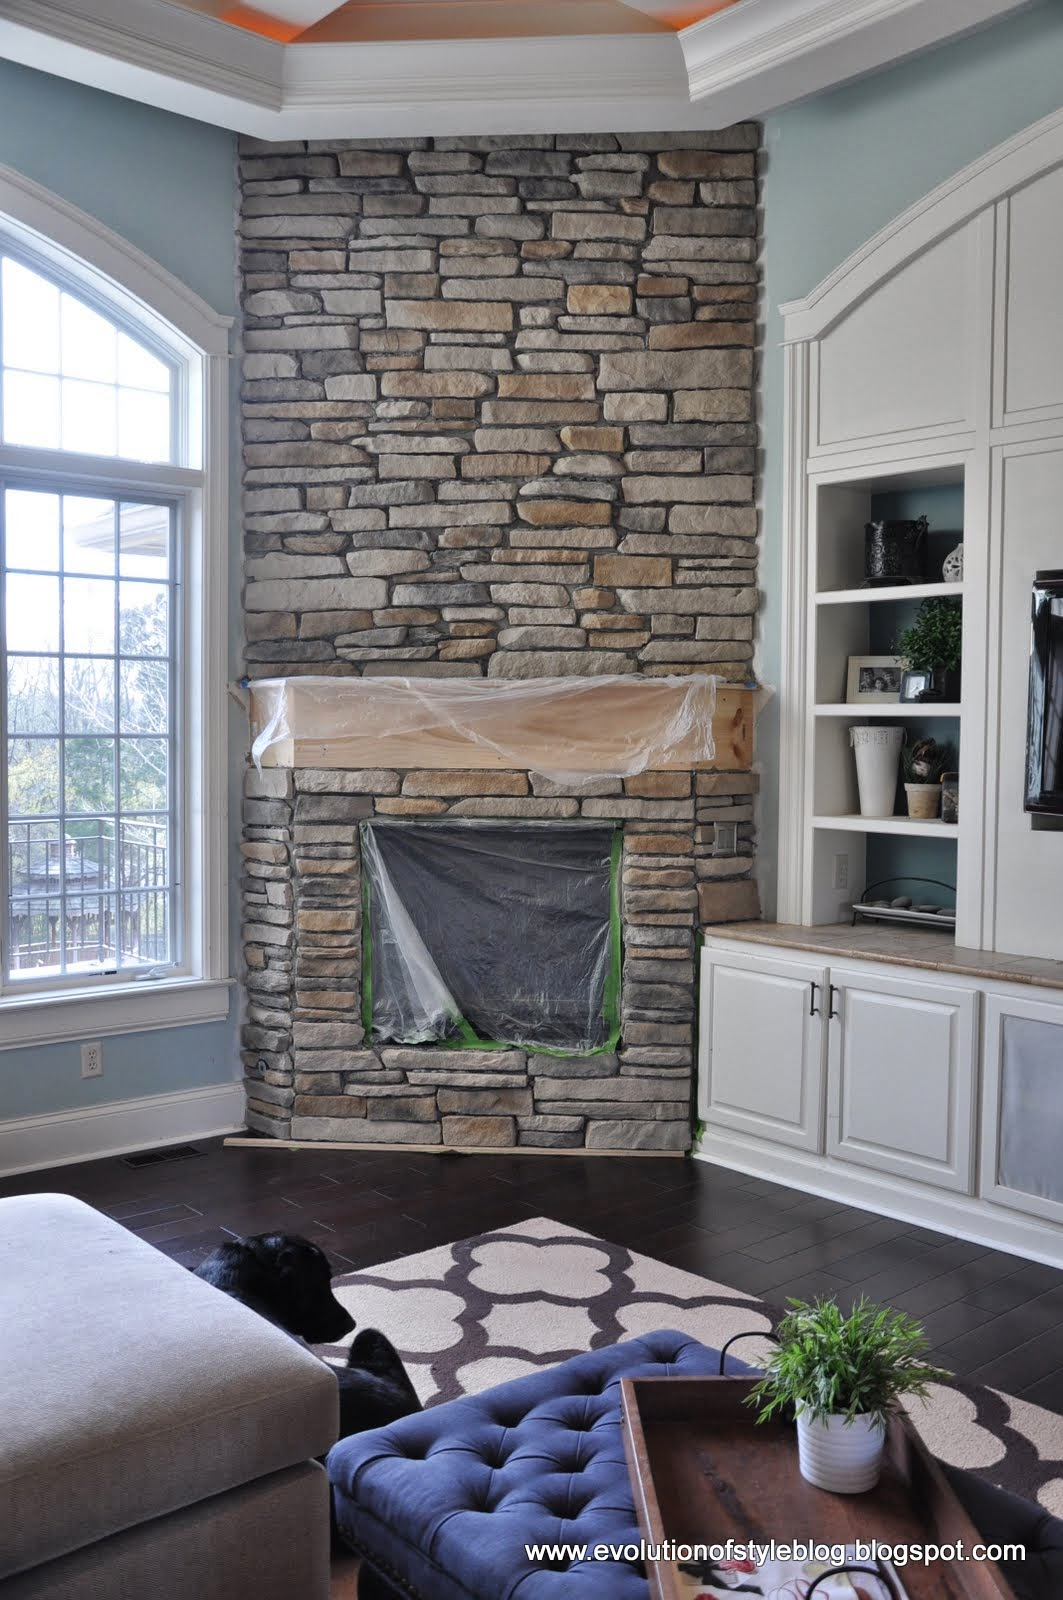 A (Big) Stone Fireplace Update! - Evolution of Style